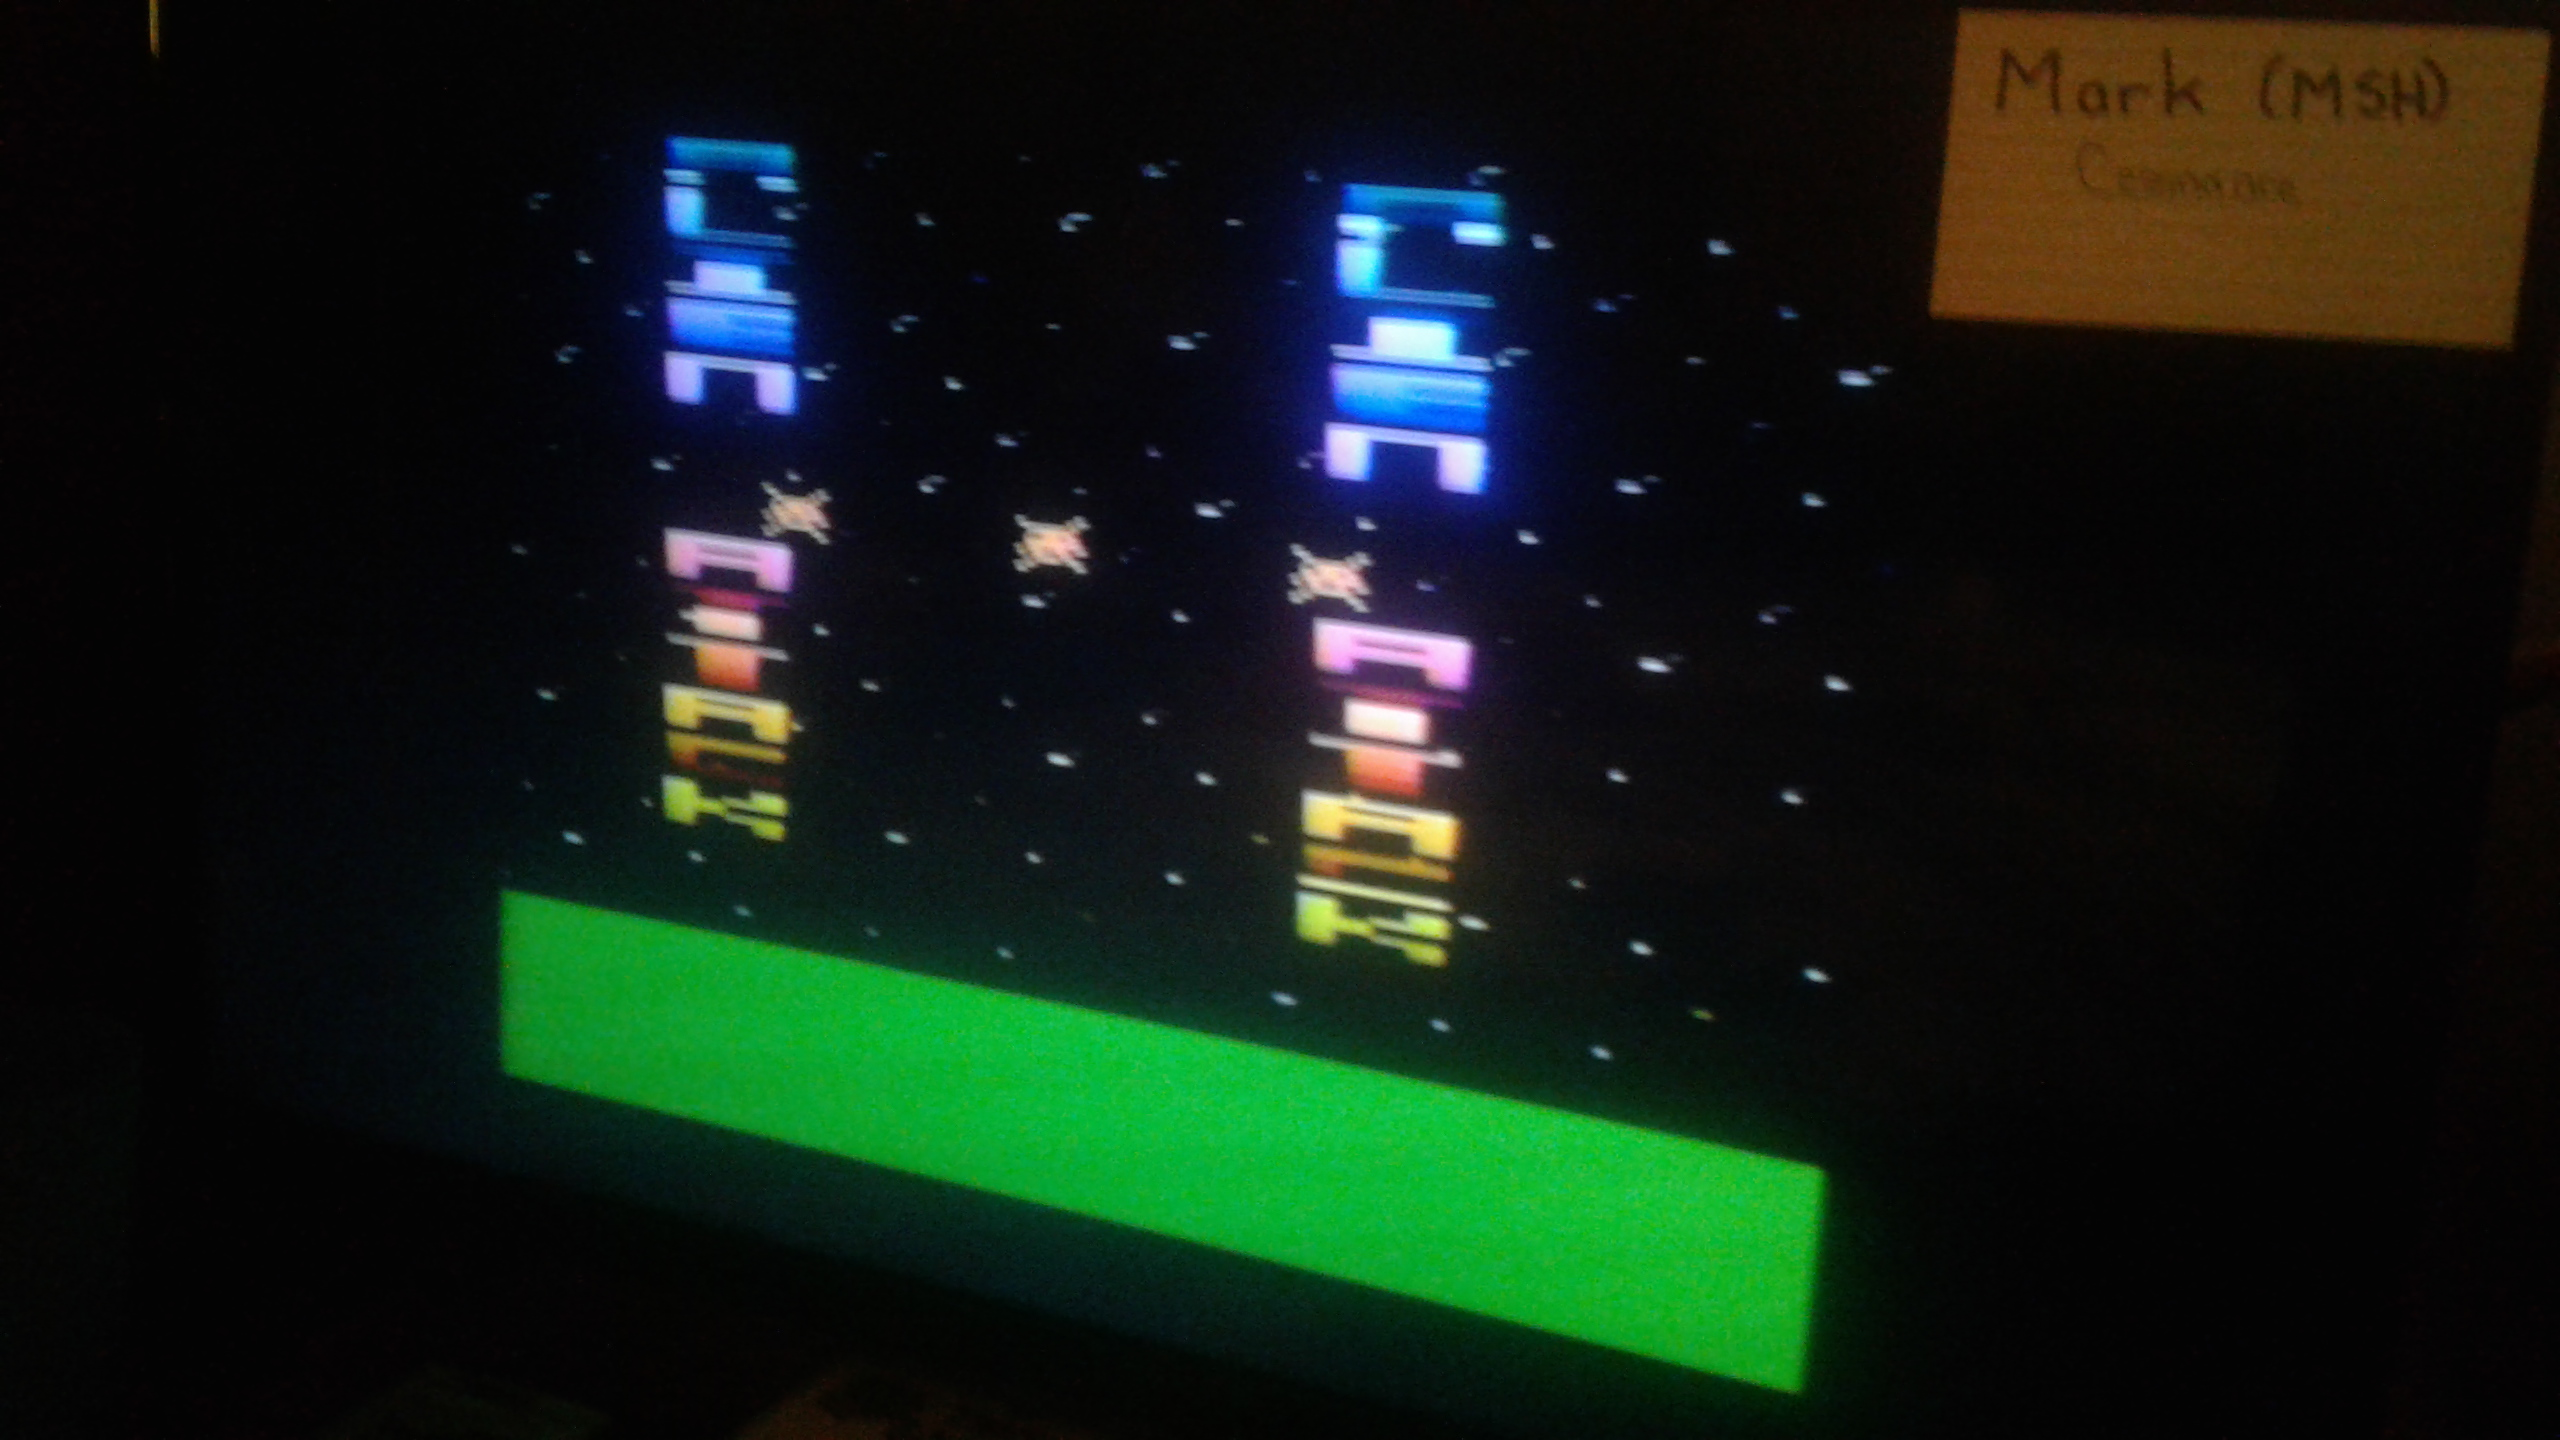 Mark: Alien Attack (Atari 2600 Novice/B) 3 points on 2019-05-28 02:59:04